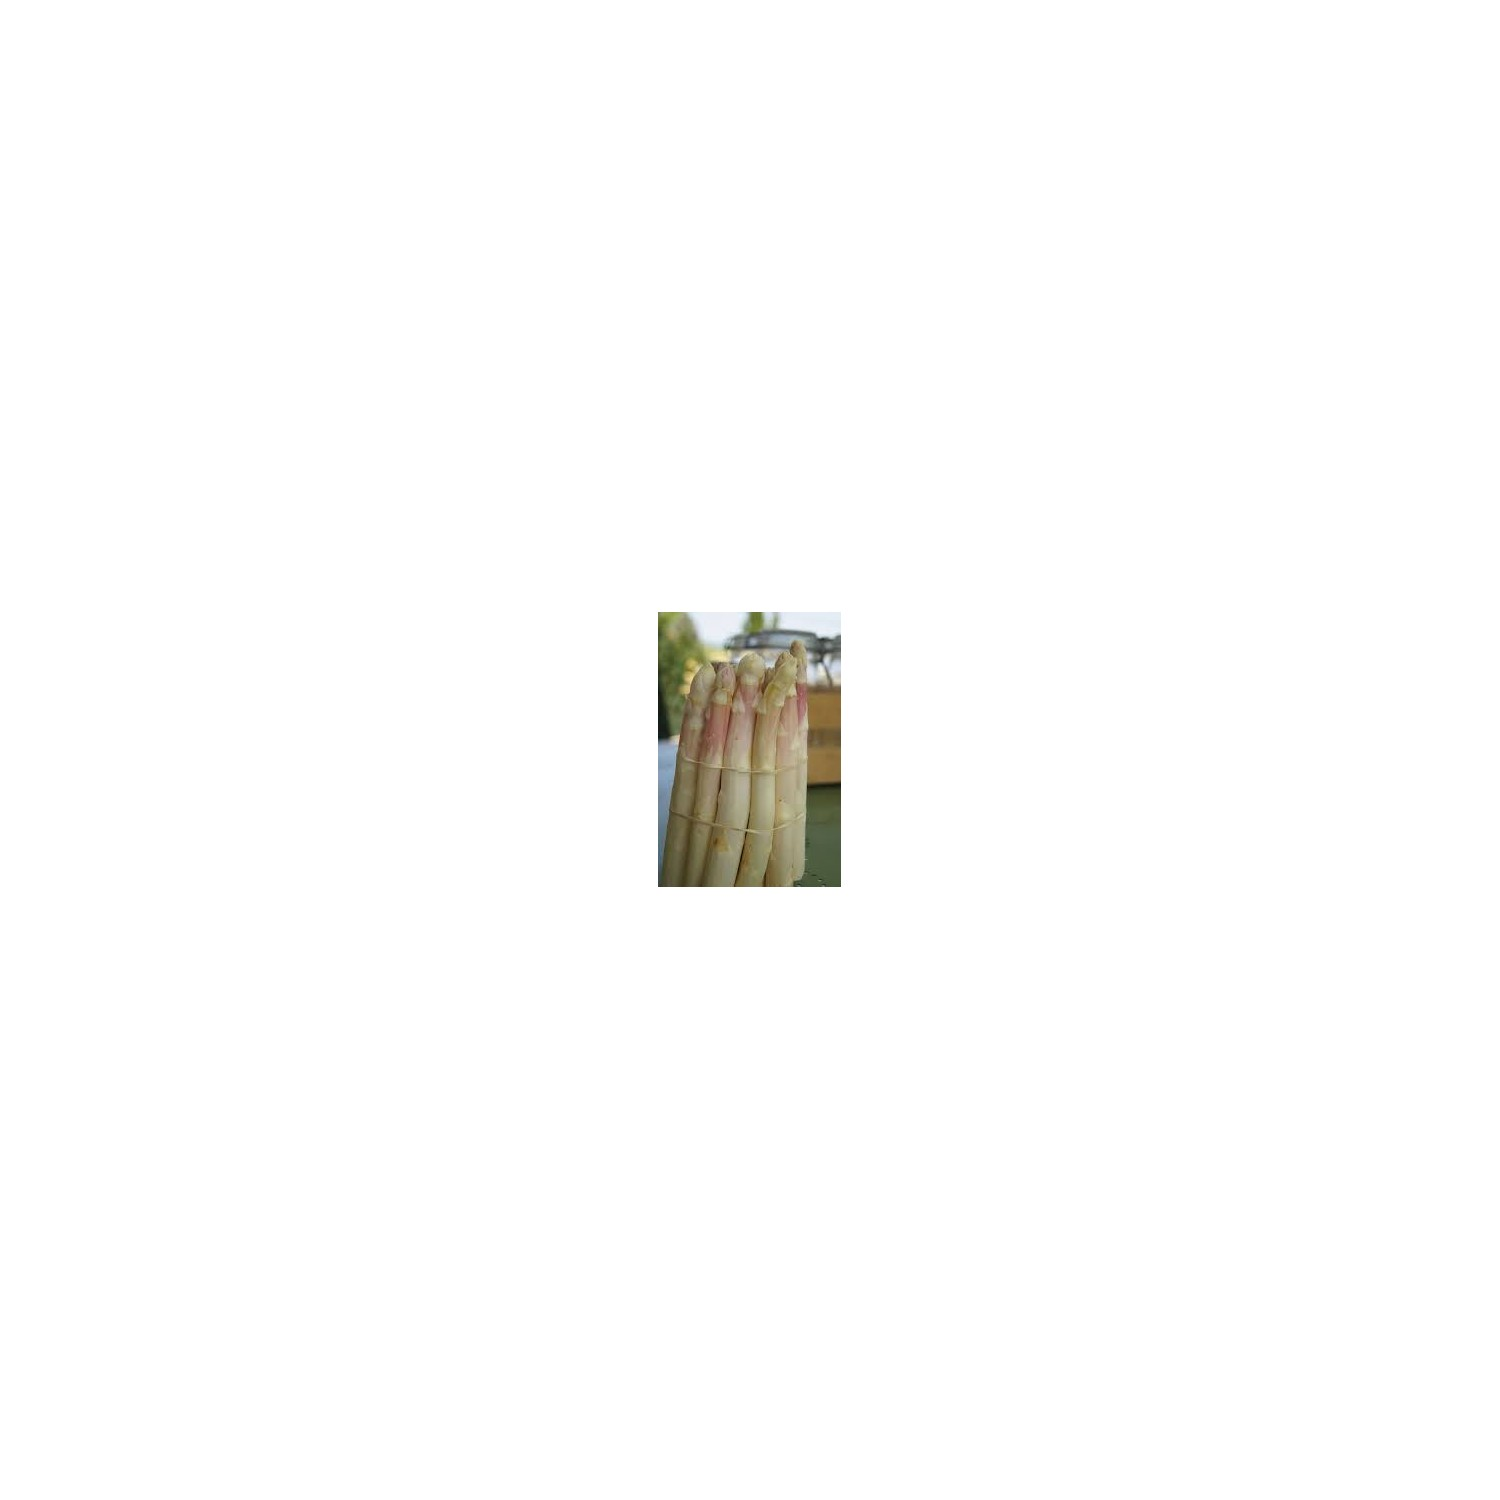 asperges blanches du pays 500g (grosse)